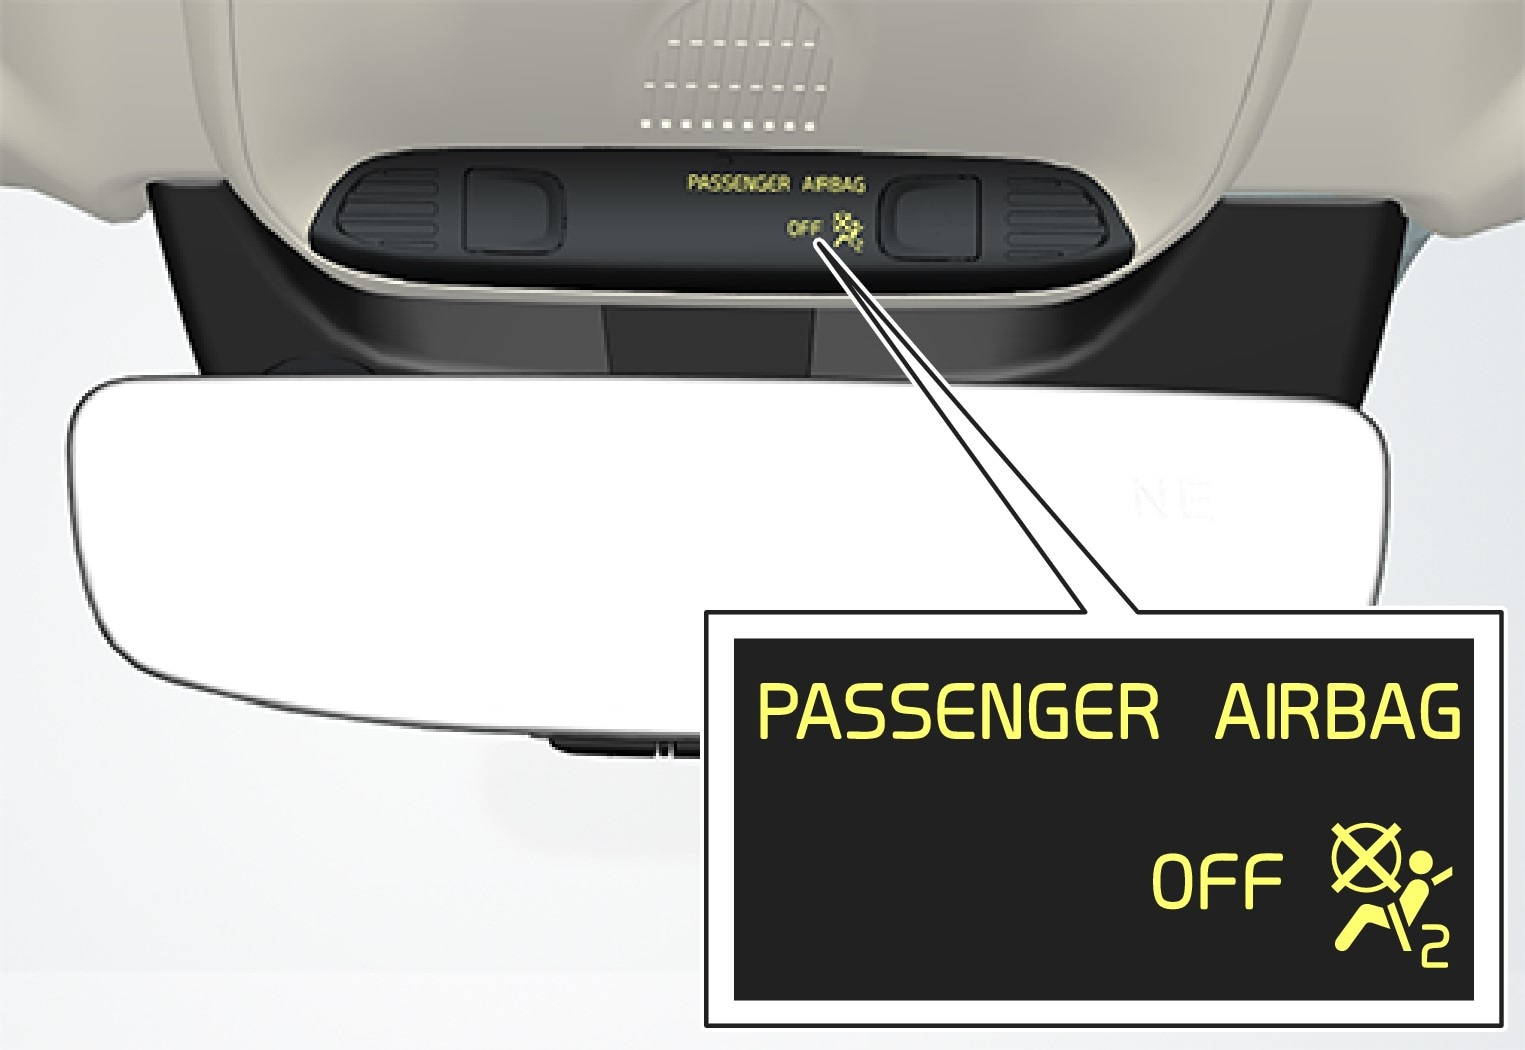 P5-1507–Safety–Overhead console passenger airbag off